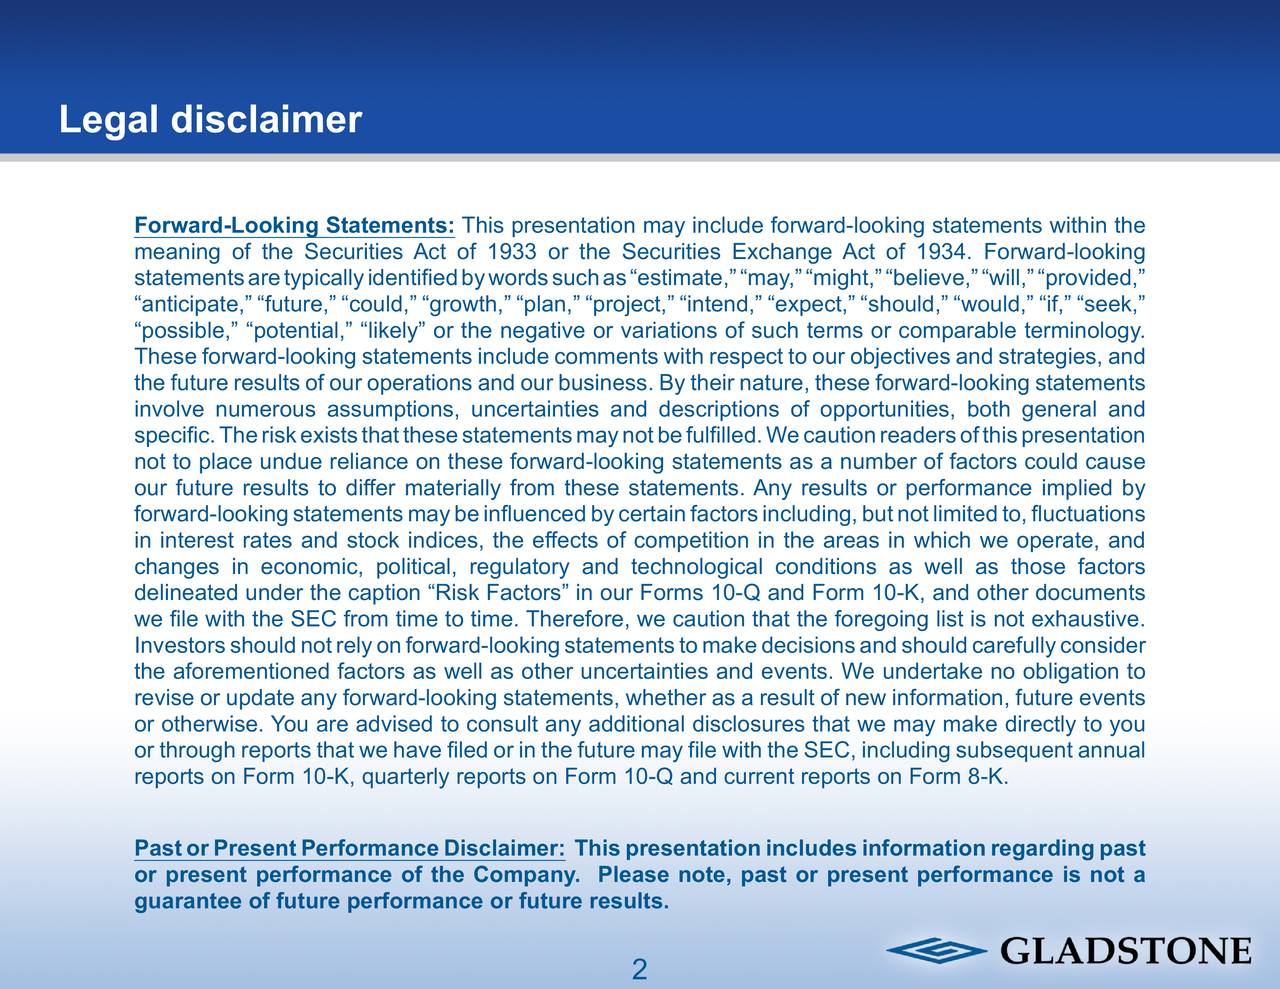 """Legal disclaimer 200.201.204 Forward-Looking Statements: This presentation may include forward-looking statements within the 7.161.142 meaning of the Securities Act of 1933 or the Securities Exchange Act of 1934. Forward-looking statementsaretypicallyidentifiedbywordssuchas""""estimate,""""""""may,""""""""might,""""""""believe,""""""""will,""""""""provided,"""" """"anticipate,"""" """"future,"""" """"could,"""" """"growth,"""" """"plan,"""" """"project,"""" """"intend,"""" """"expect,"""" """"should,"""" """"would,"""" """"if,"""" """"seek,"""" 210.189.154 """"possible,"""" """"potential,"""" """"likely"""" or the negative or variations of such terms or comparable terminology. These forward-looking statements include comments with respect to our objectives and strategies, and the future results of our operations and our business. By their nature, these forward-looking statements involve numerous assumptions, uncertainties and descriptions of opportunities, both general and 114.95.164 specific.Theriskexiststhatthesestatementsmaynotbefulfilled.Wecautionreadersofthispresentation not to place undue reliance on these forward-looking statements as a number of factors could cause our future results to differ materially from these statements. Any results or performance implied by 224.224.13 forward-lookingstatementsmaybeinfluencedbycertainfactorsincluding,butnotlimitedto,fluctuations in interest rates and stock indices, the effects of competition in the areas in which we operate, and changes in economic, political, regulatory and technological conditions as well as those factors delineated under the caption """"Risk Factors"""" in our Forms 10-Q and Form 10-K, and other documents 247.82.73 we file with the SEC from time to time. Therefore, we caution that the foregoing list is not exhaustive. Investorsshouldnotrelyonforward-lookingstatementstomakedecisionsandshouldcarefullyconsider the aforementioned factors as well as other uncertainties and events. We undertake no obligation to 200.201.204 revise or update any forward-looking statements, whether as a result of new information, future events or otherwi"""